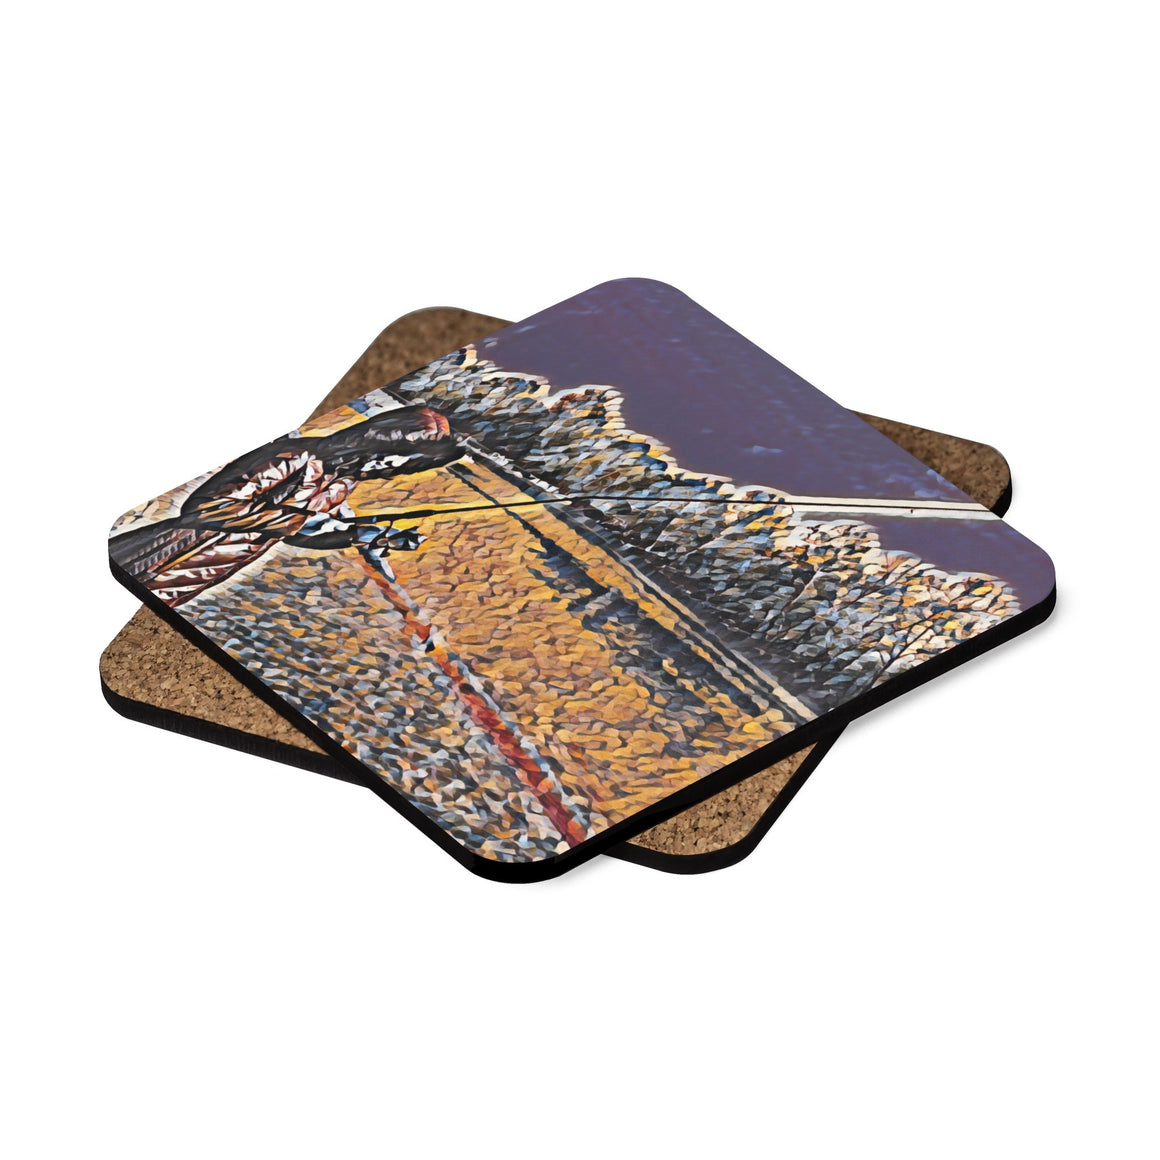 Levi Thang Fishing Design 3 Square Hardboard Coaster Set - 4pcs - I Am A Dreamer